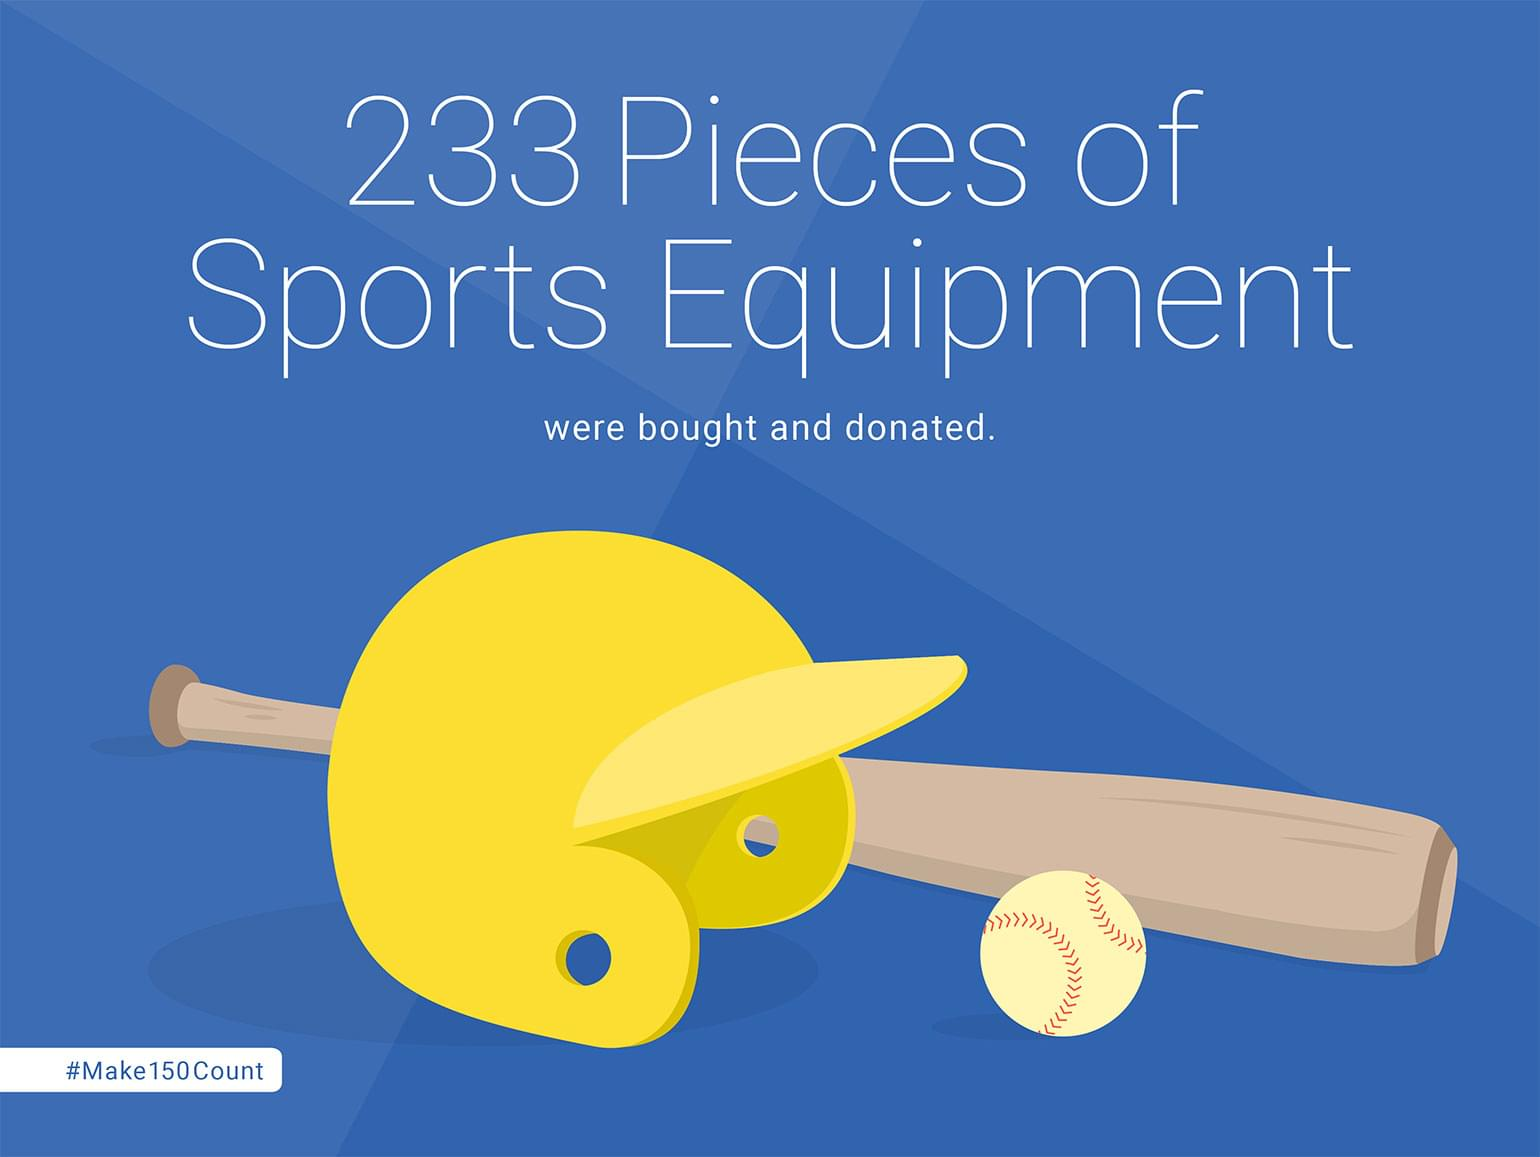 233 Pieces of Sports Equipment bought and donated.